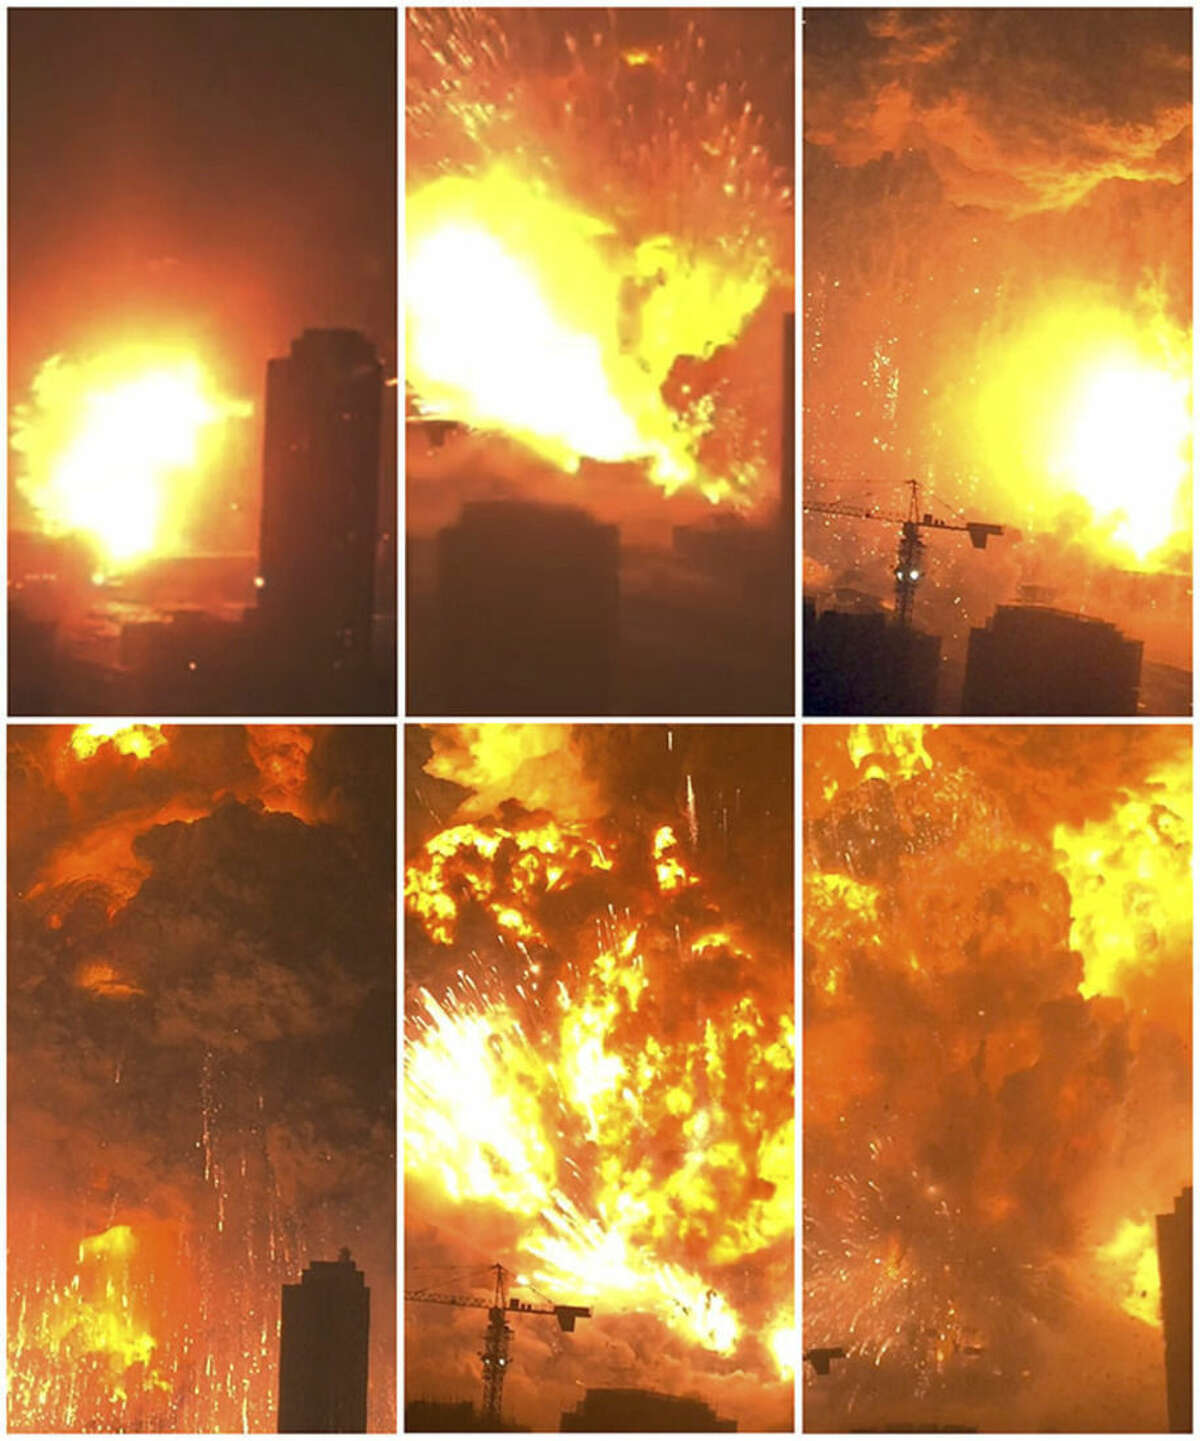 Dan Van Duren via AP In this combination of Wednesday images taken from video provided by Dan Van Duren, a warehouse explodes in Tianjin, China, as filmed from a nearby residential building. Tianjin is the world's 10th largest port.